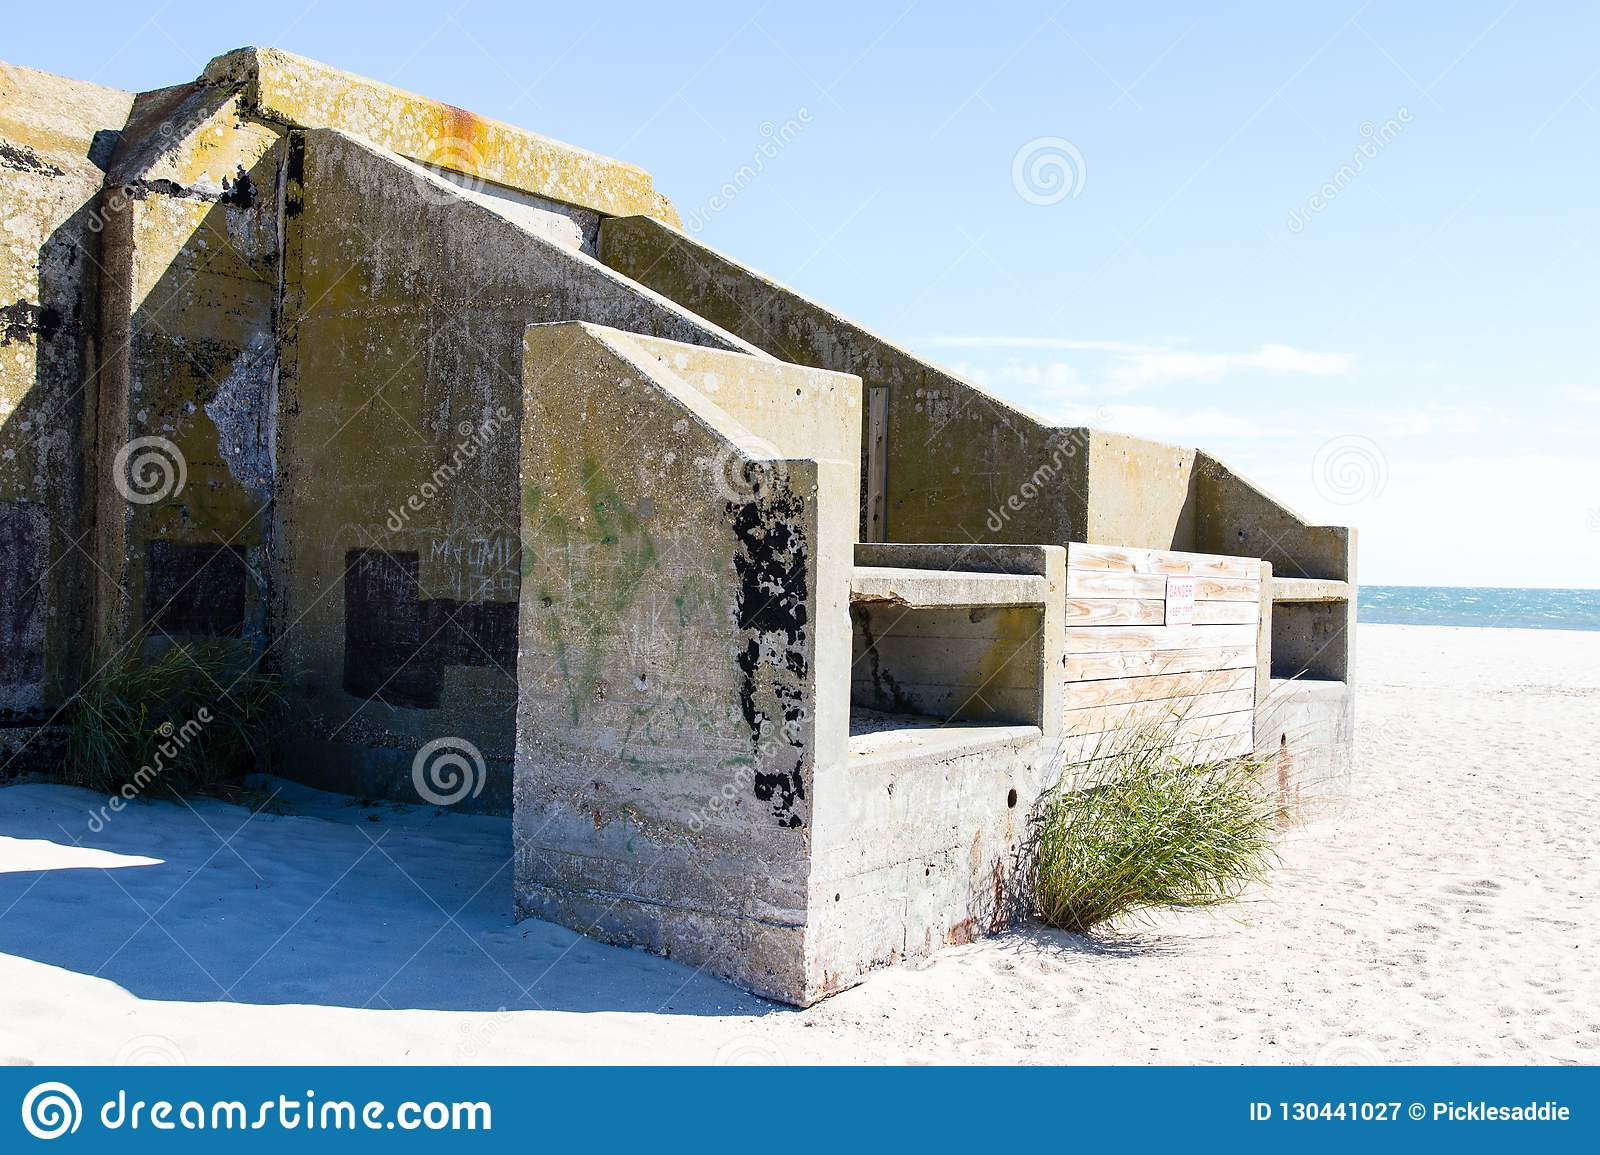 Abandoned military bunker on Cape May Point